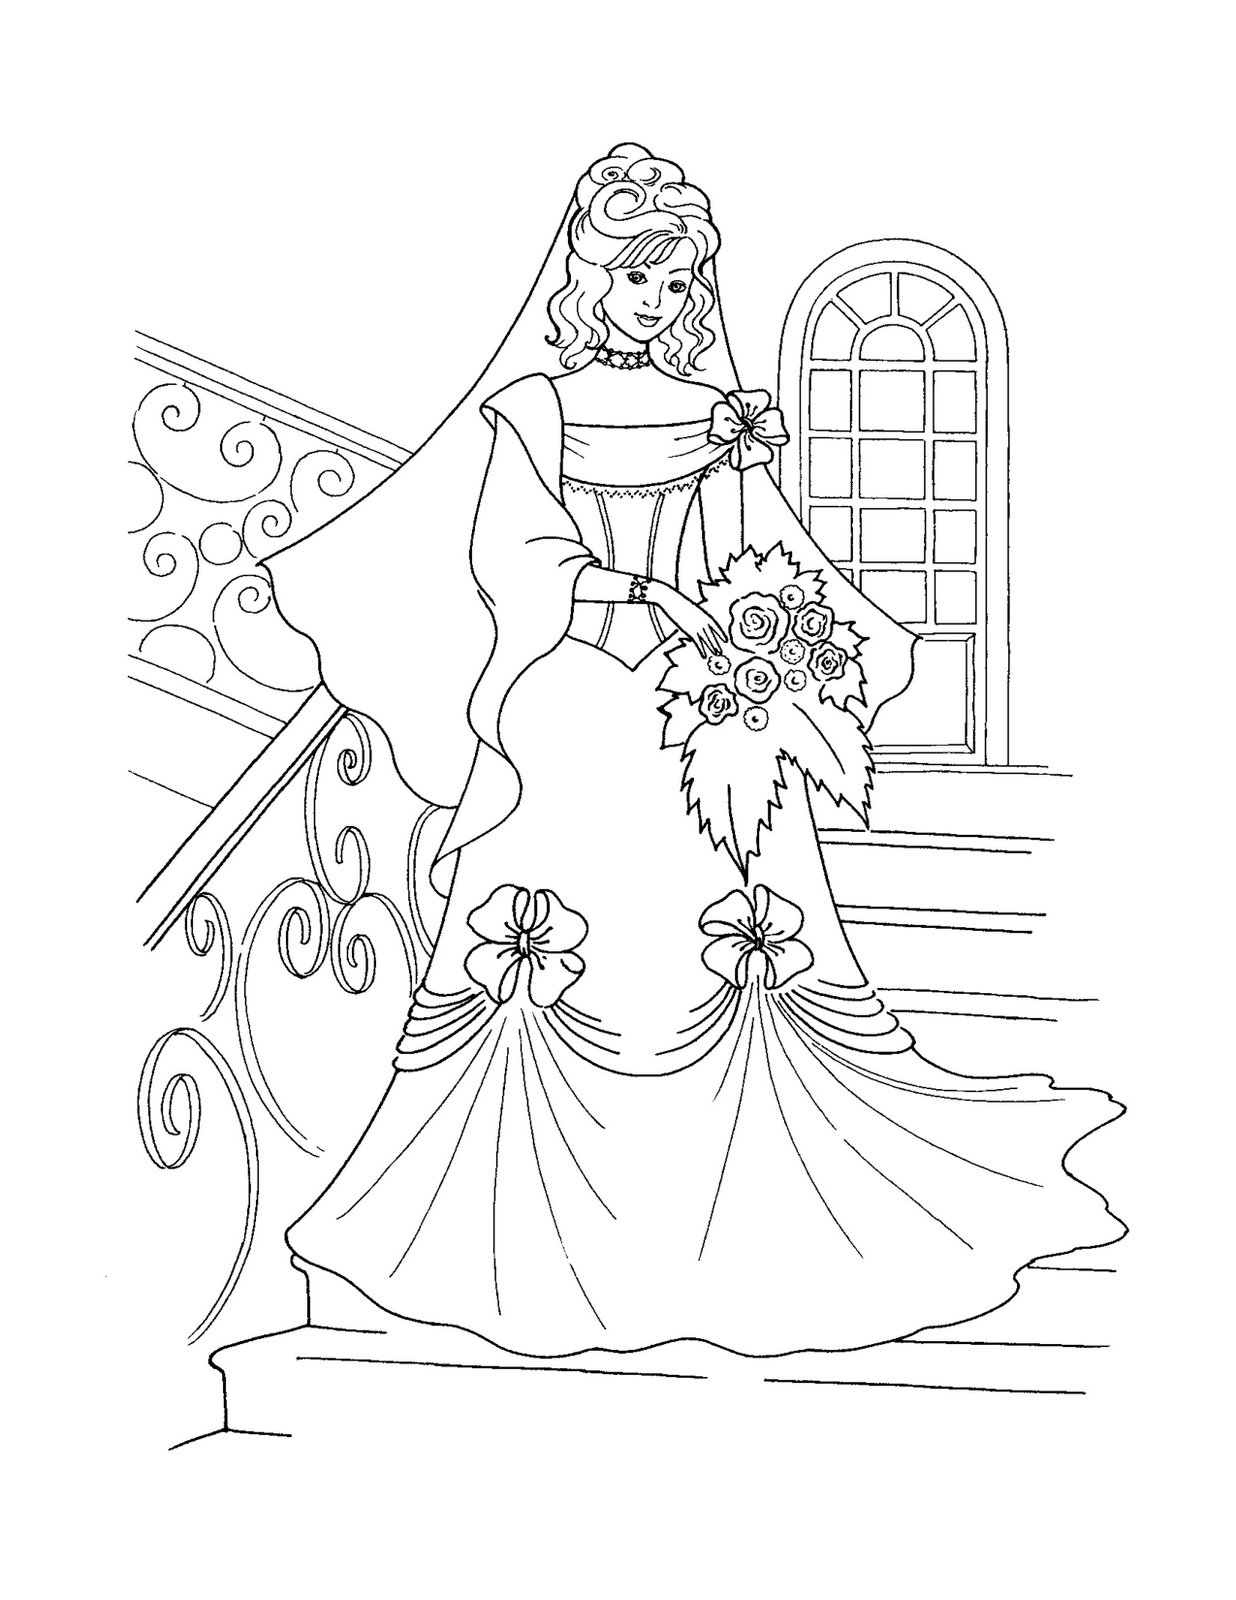 prncess coloring pages - photo#32